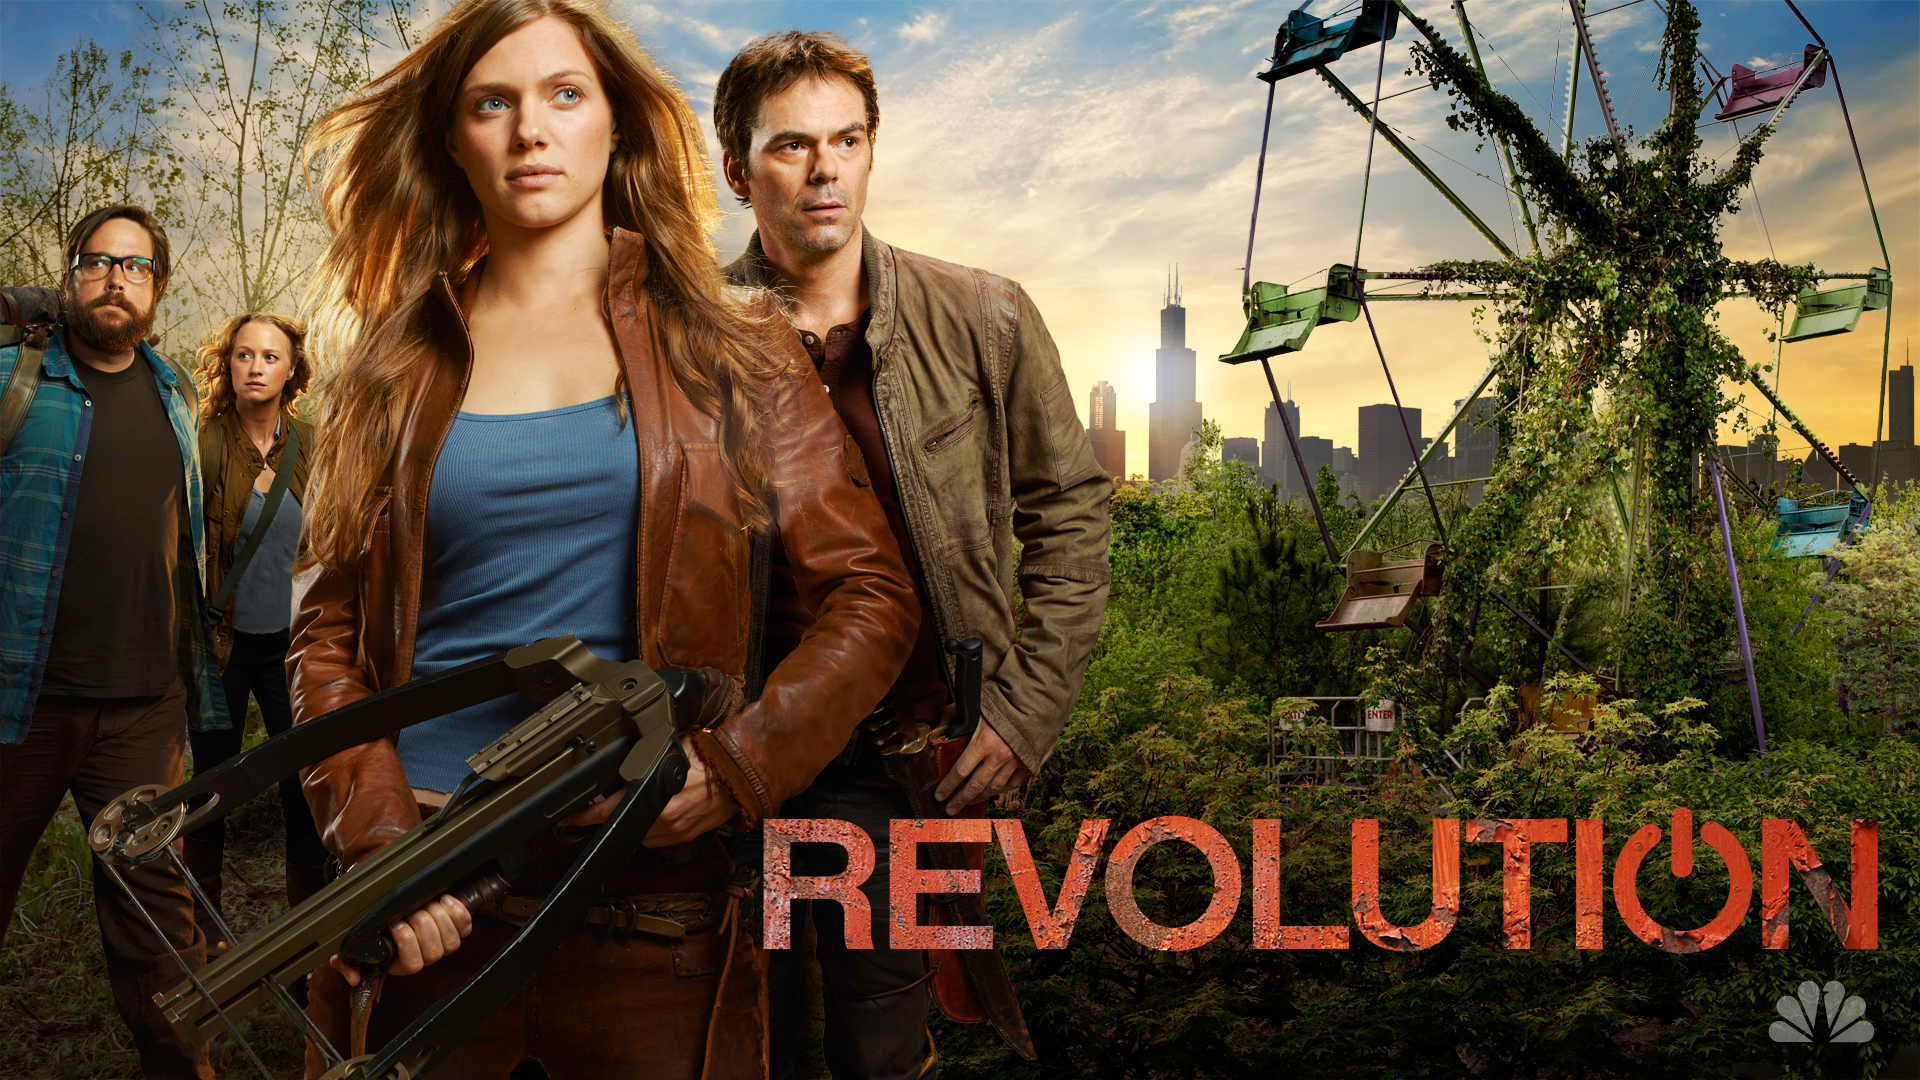 https://bandbent.files.wordpress.com/2012/10/revolution-banner.jpg